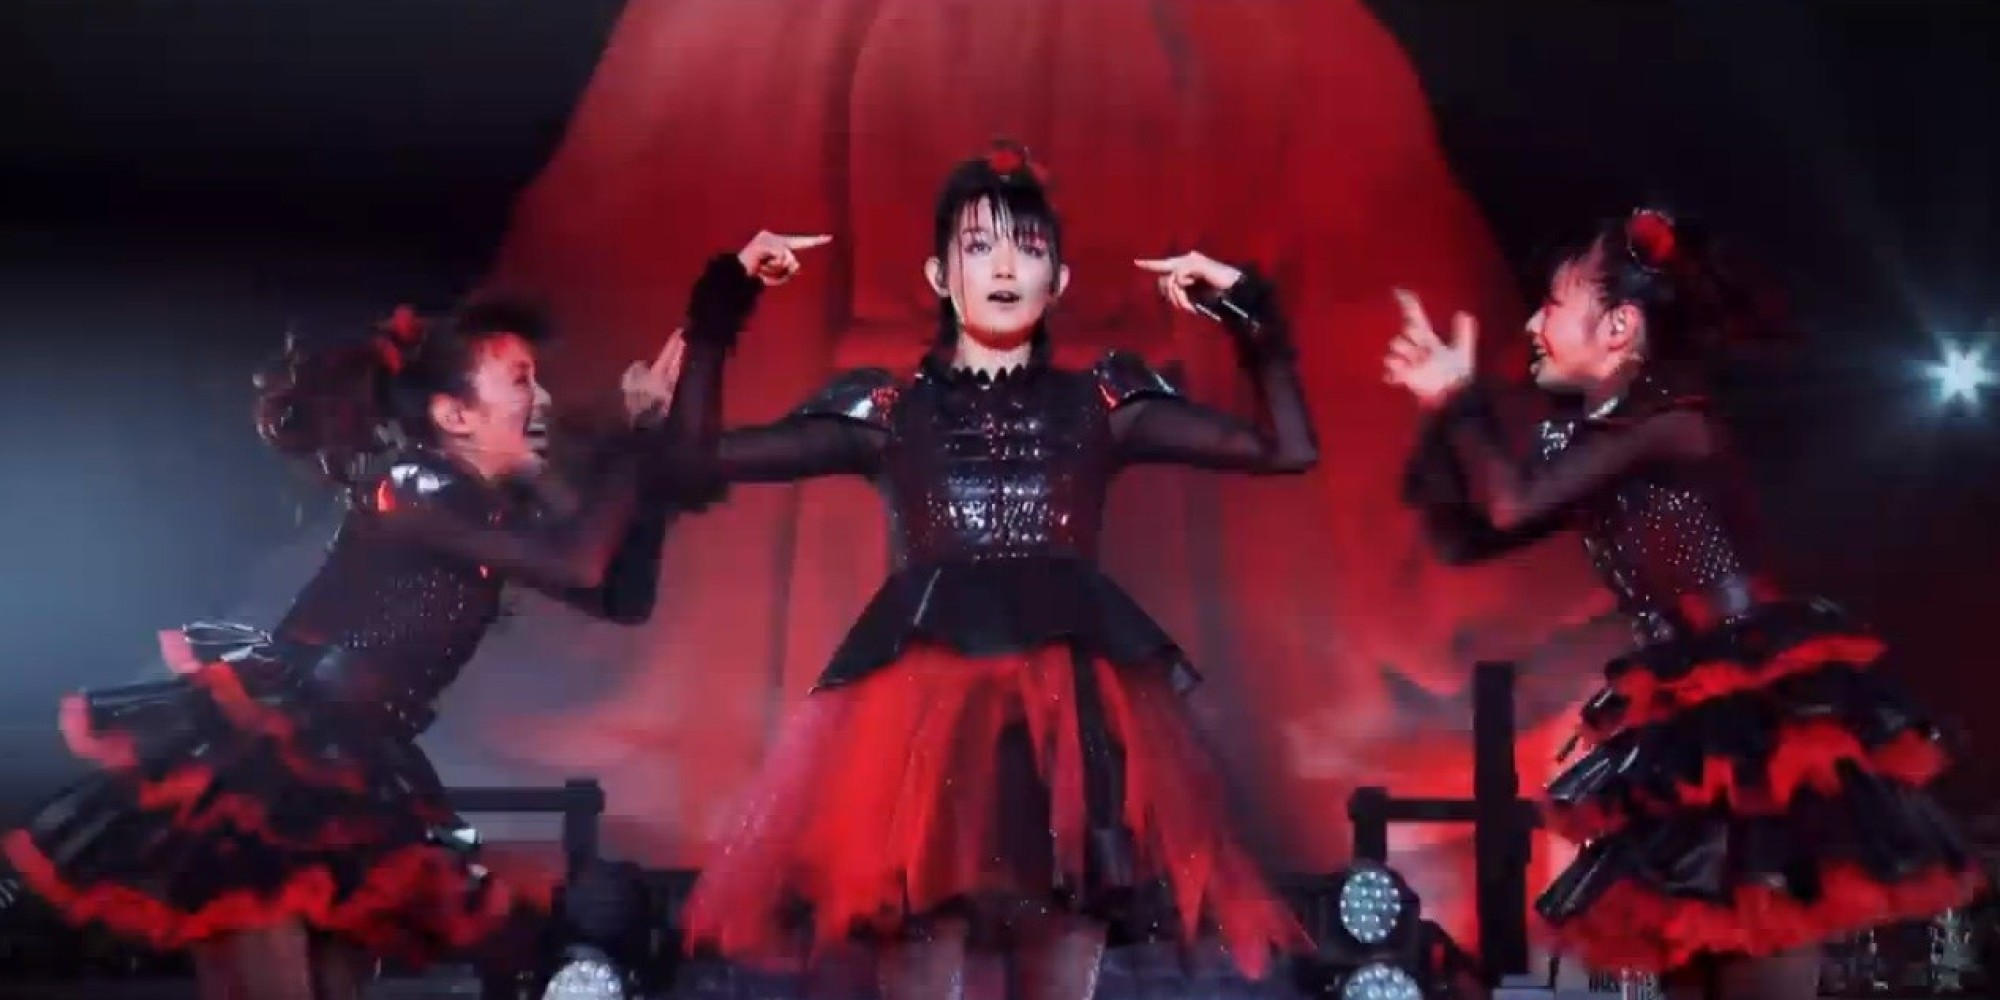 babymetal japan s cute heavy metal band releases new